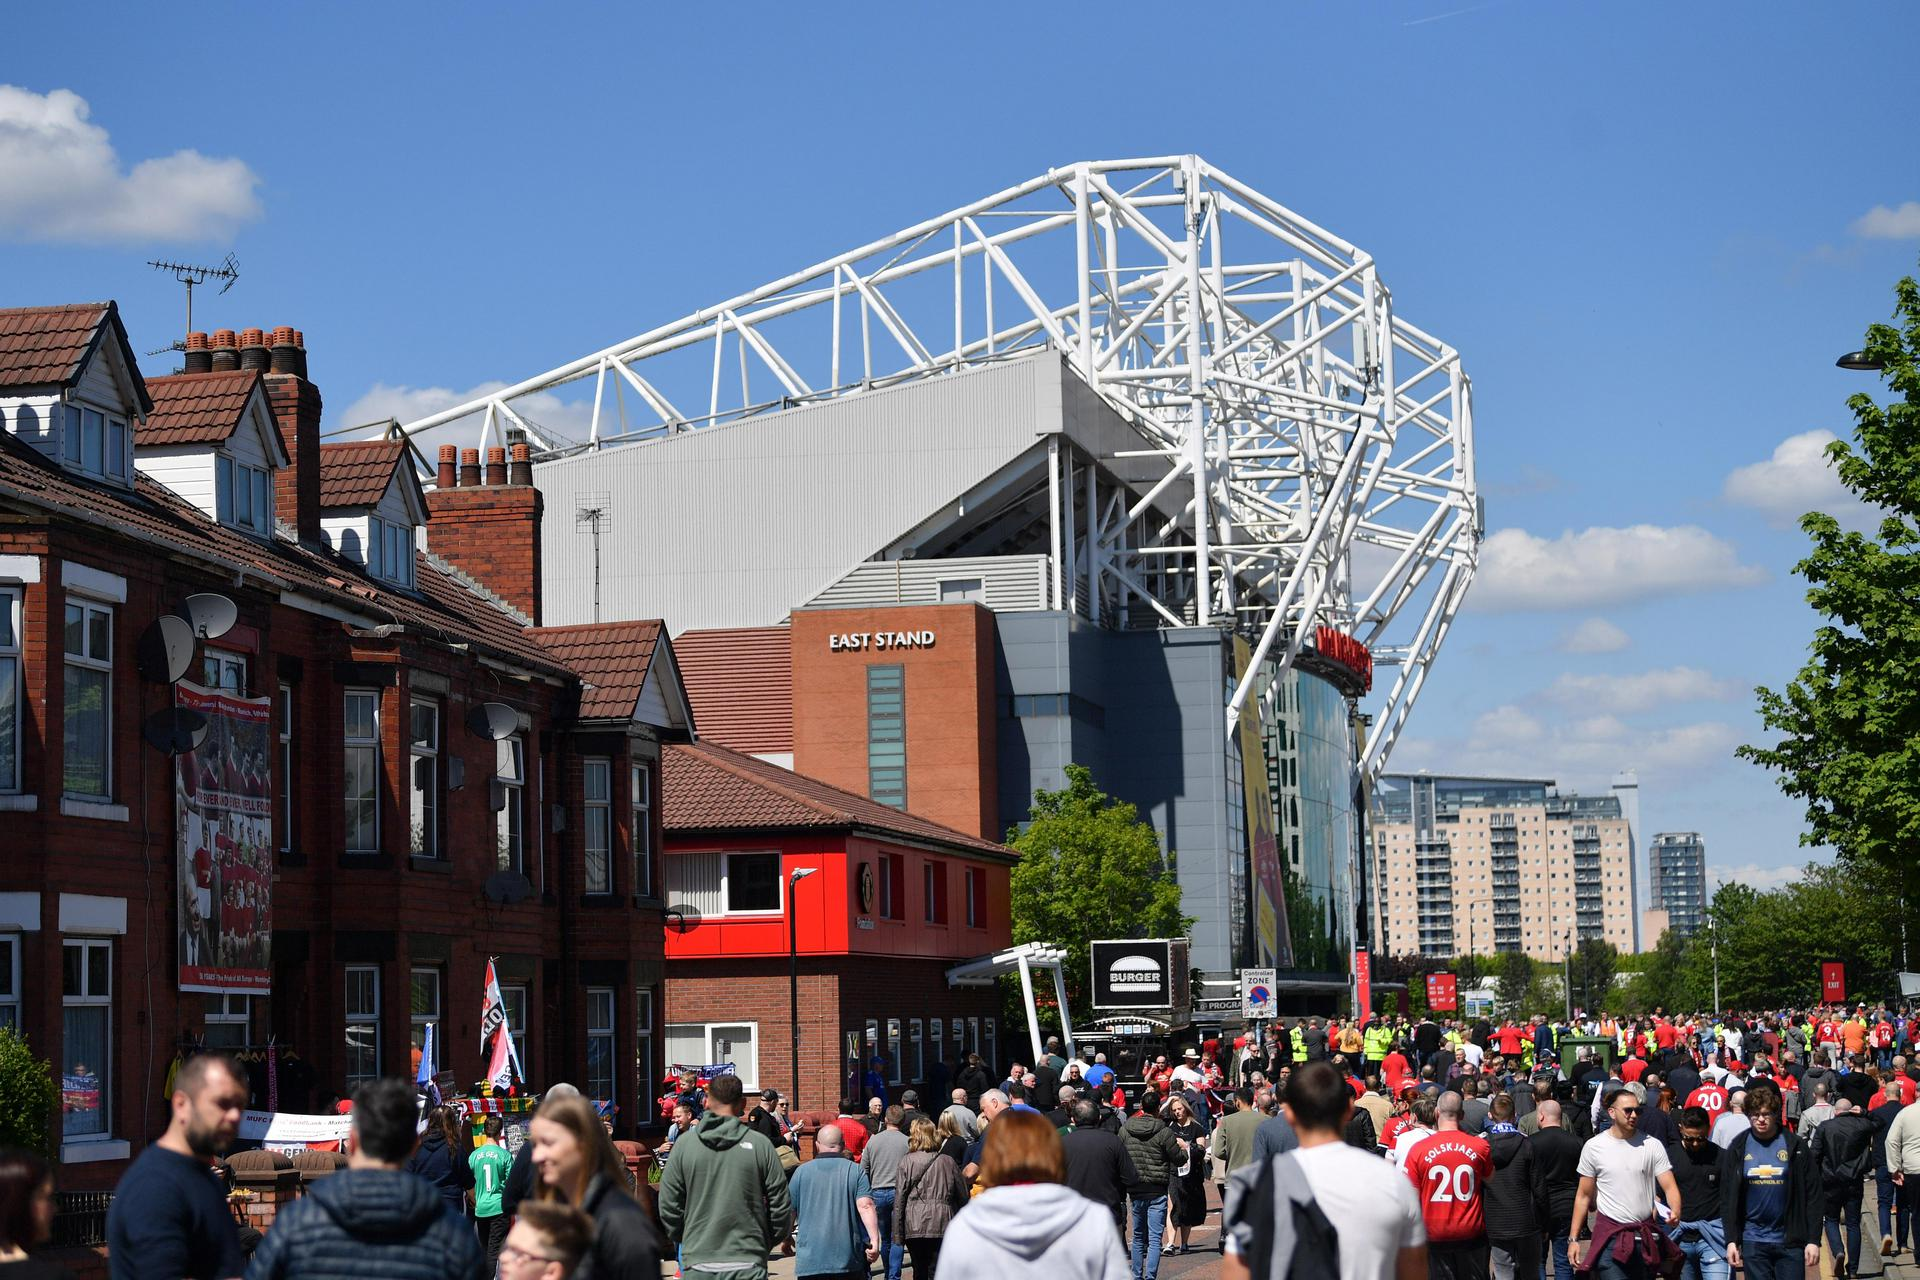 Fans walking to Old Trafford.